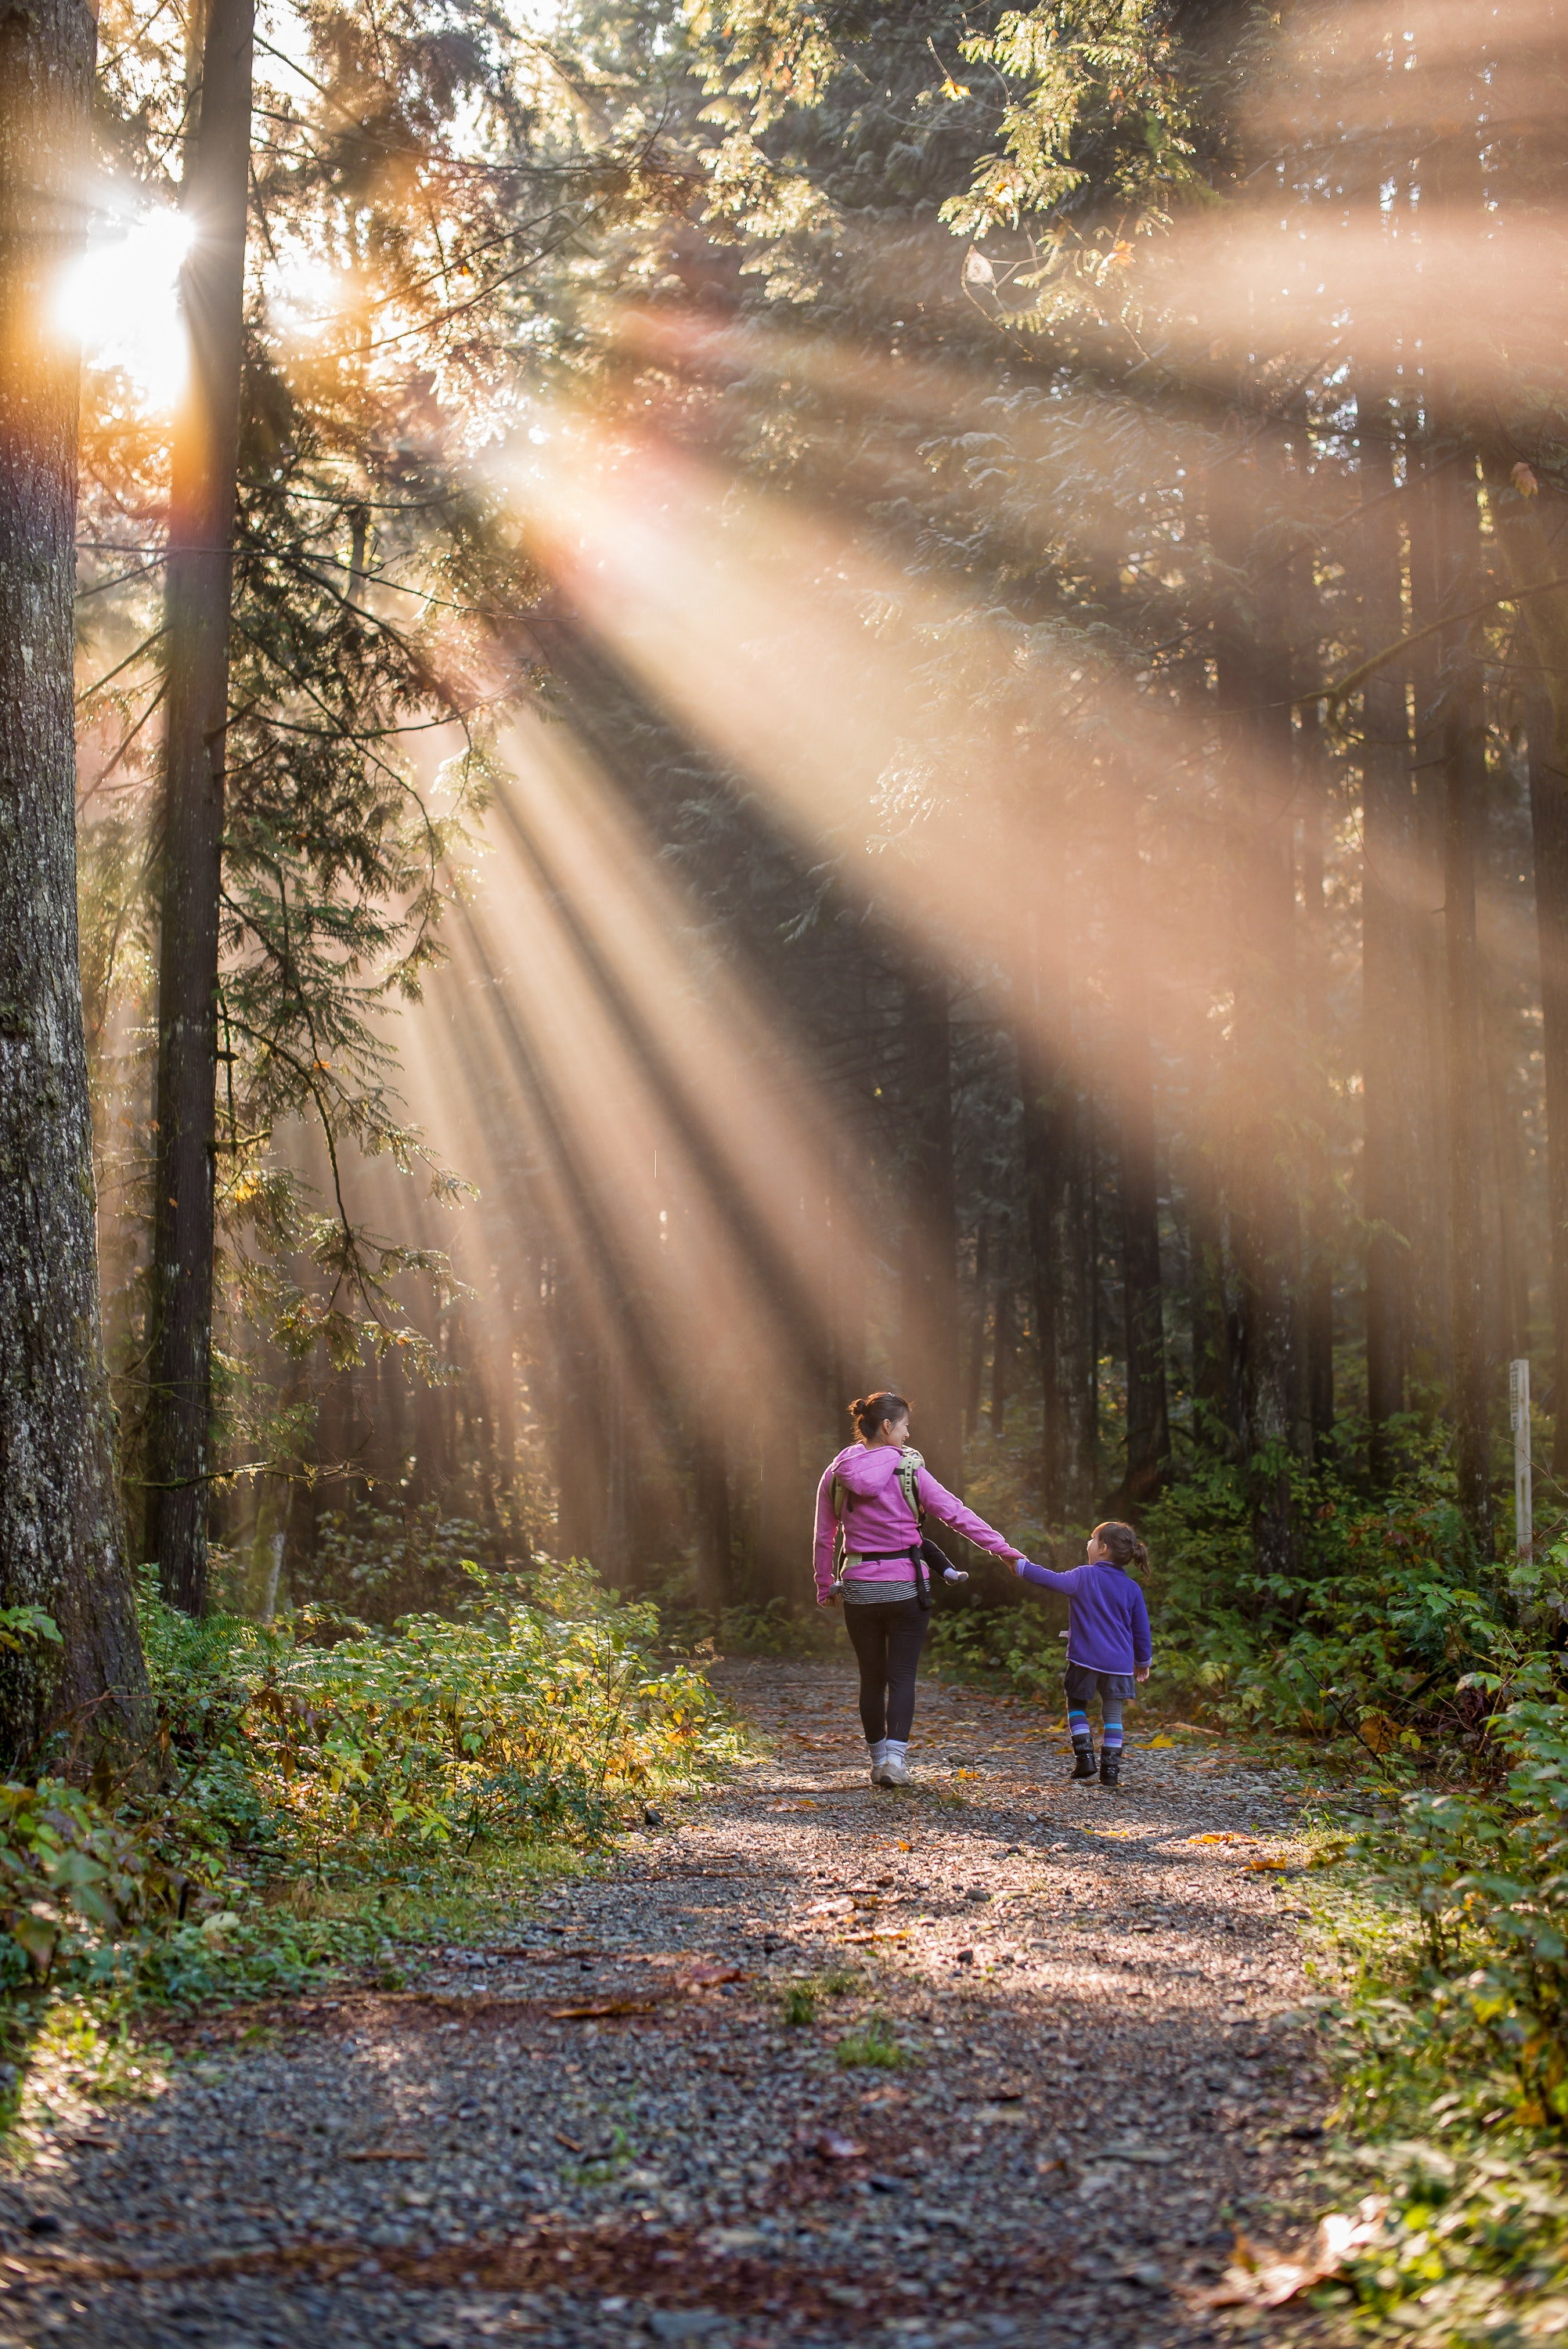 Mom, baby in carrier, and daughter holding hands walking away on a forest path with sunlight streaming from above